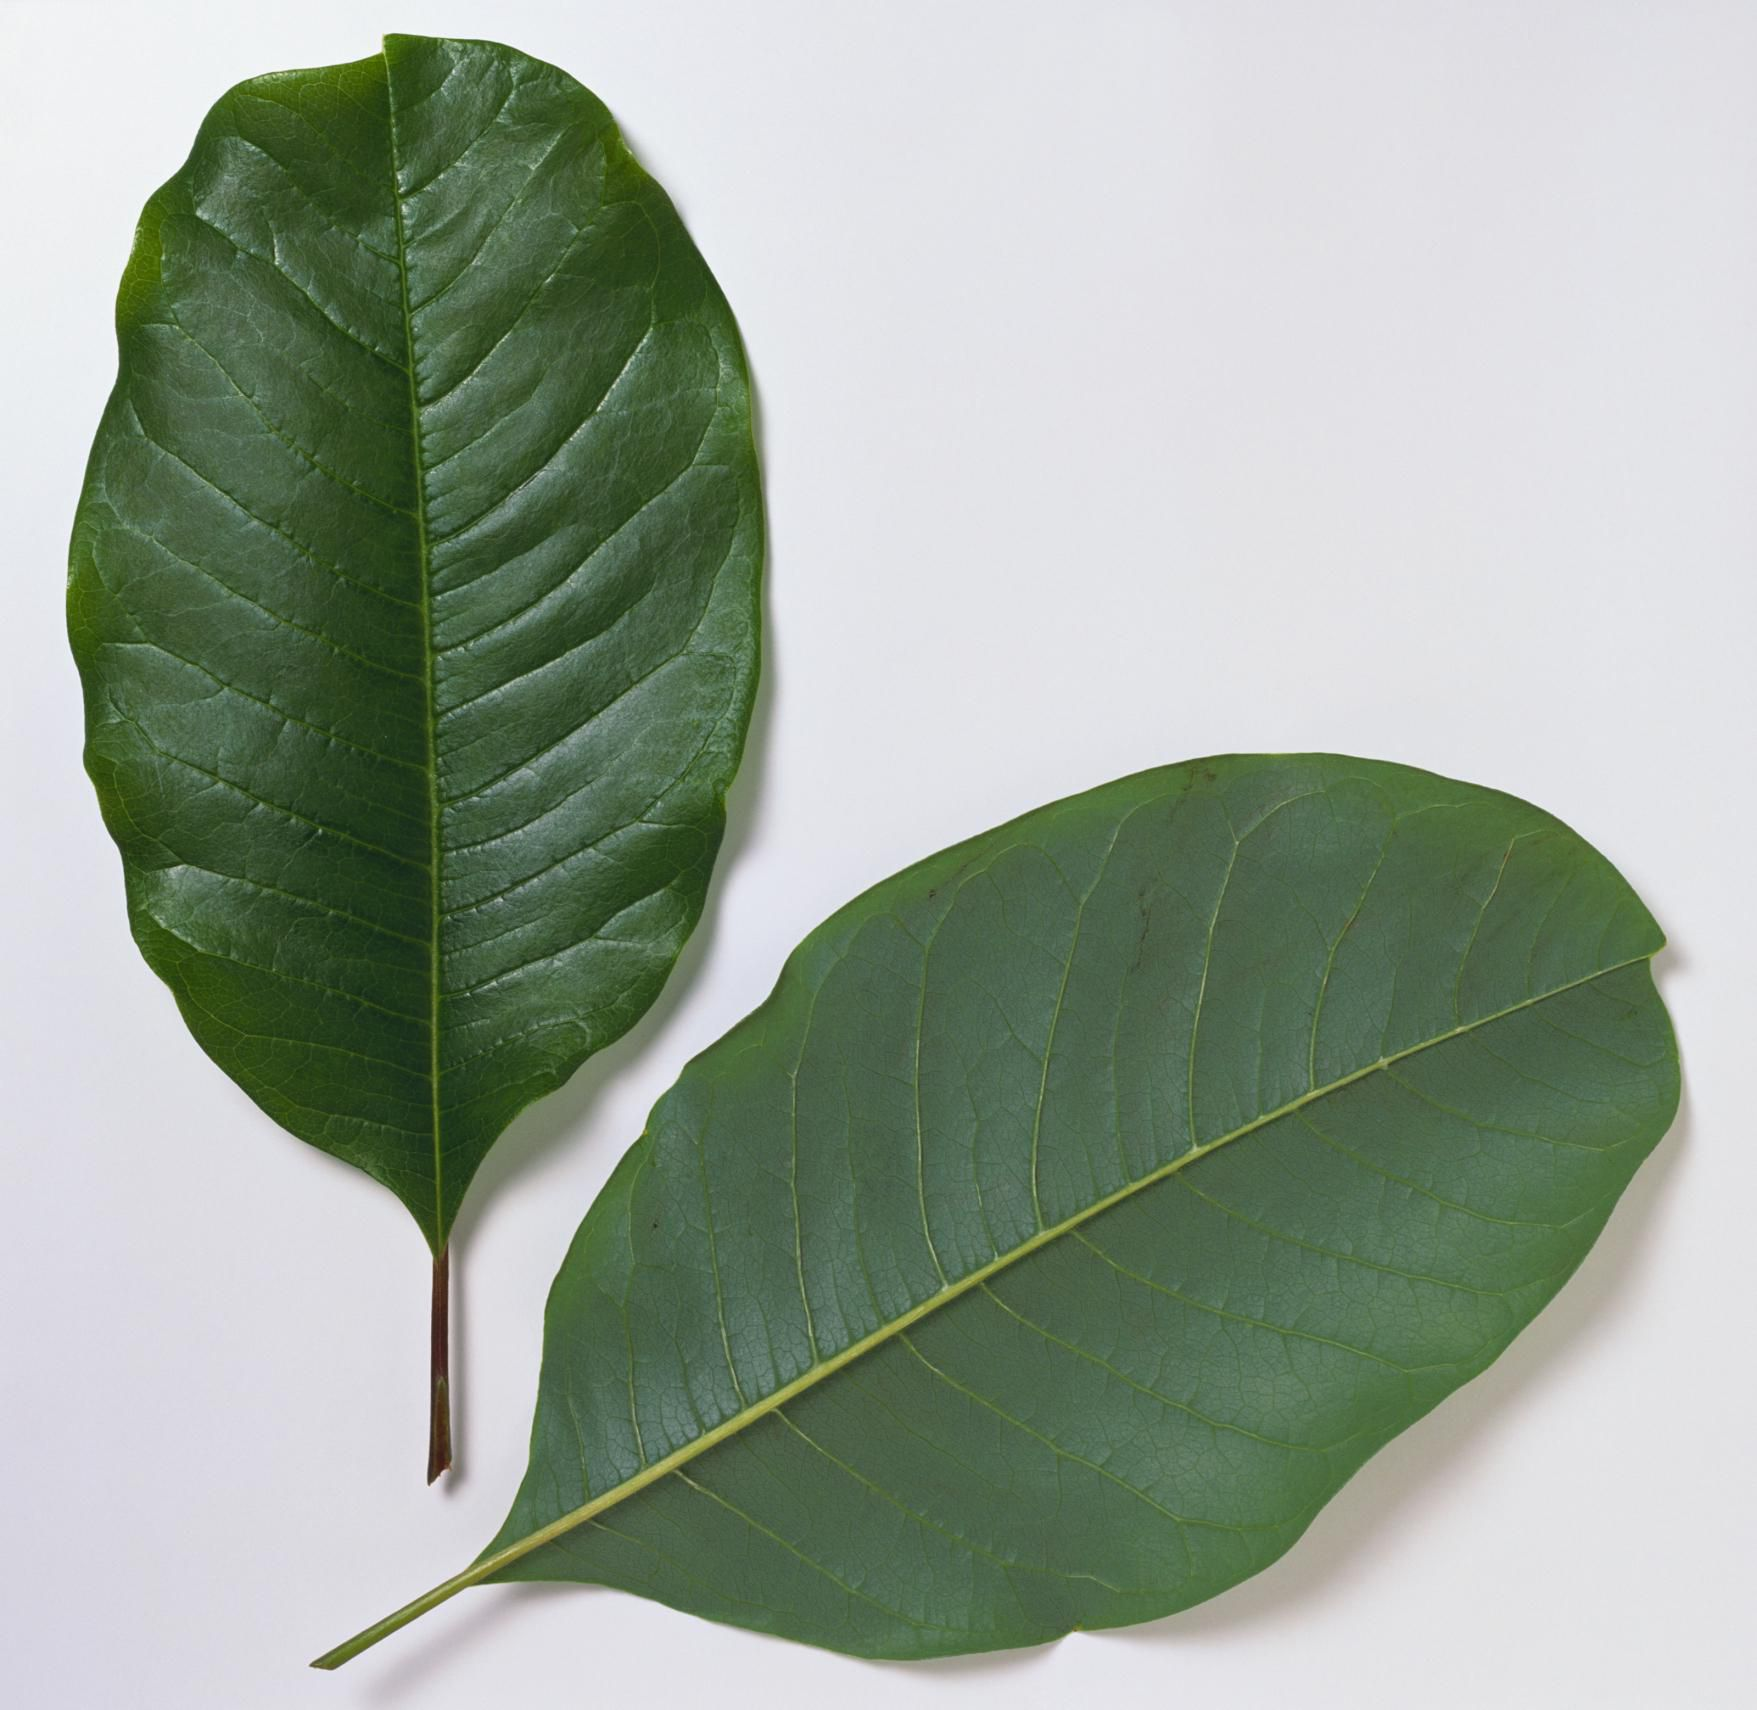 Tree Leaf Key - Magnolia, Persimmon, Dogwood, Live Oak